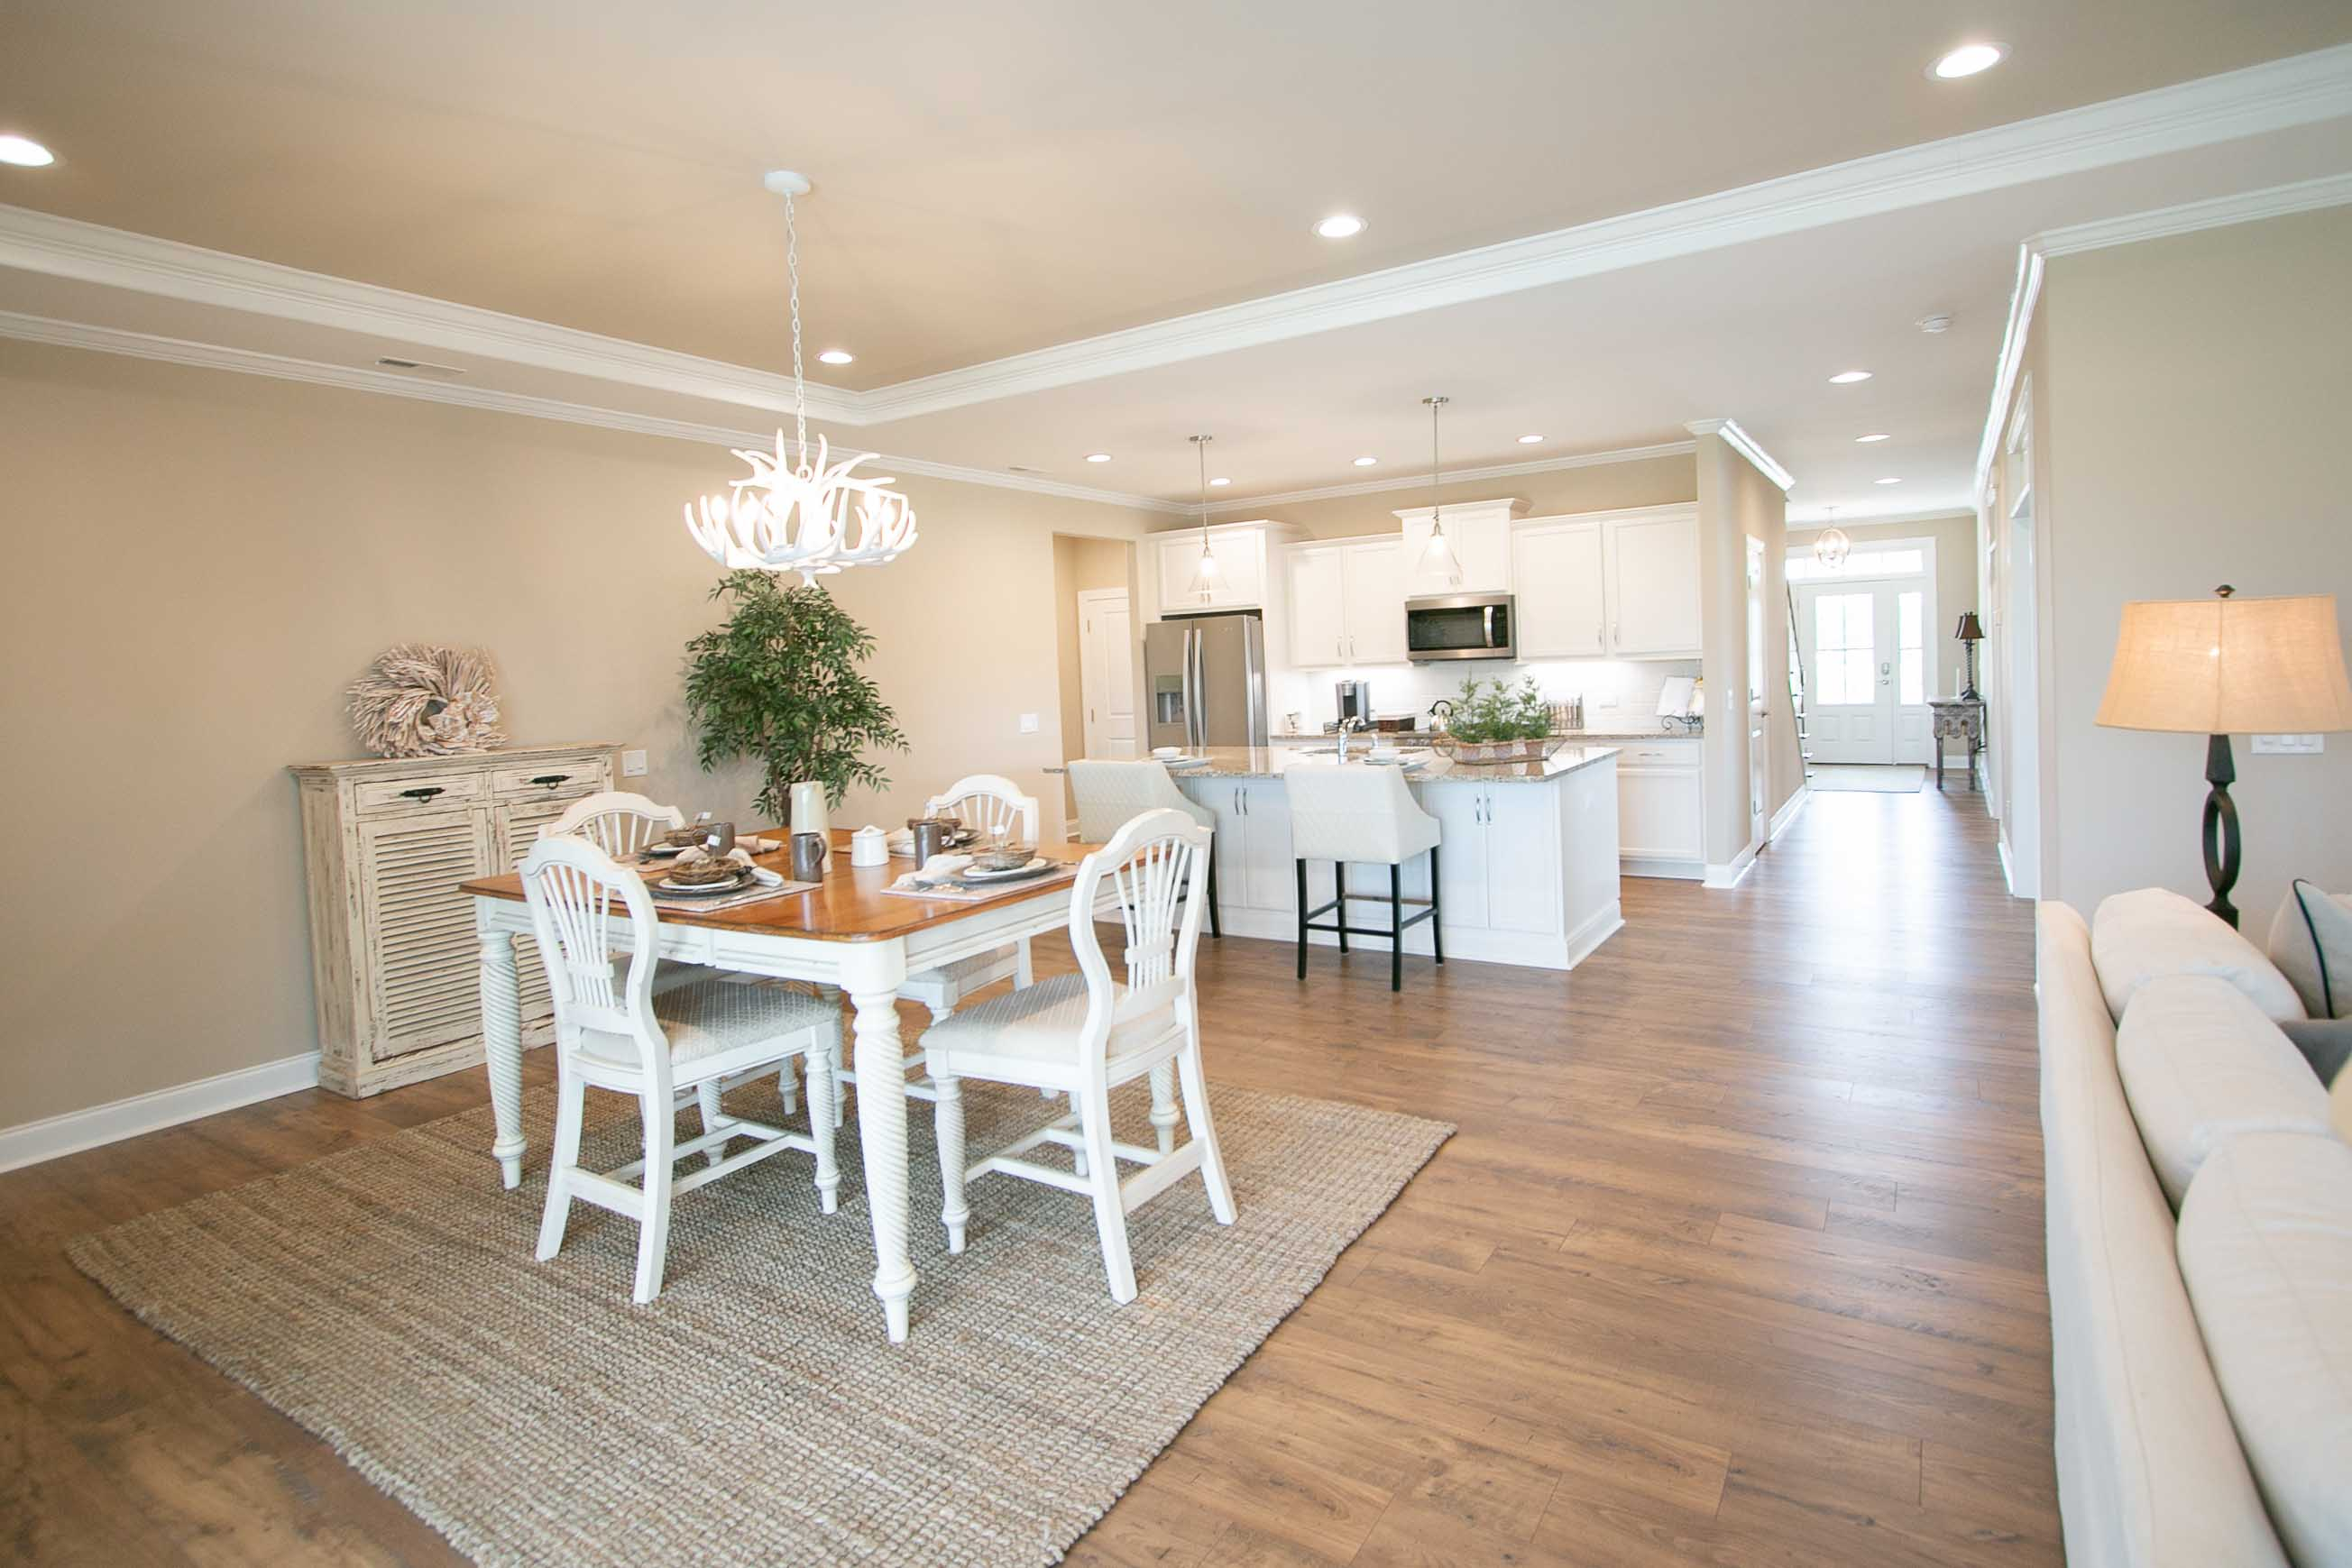 The Linville by Trusst Builders